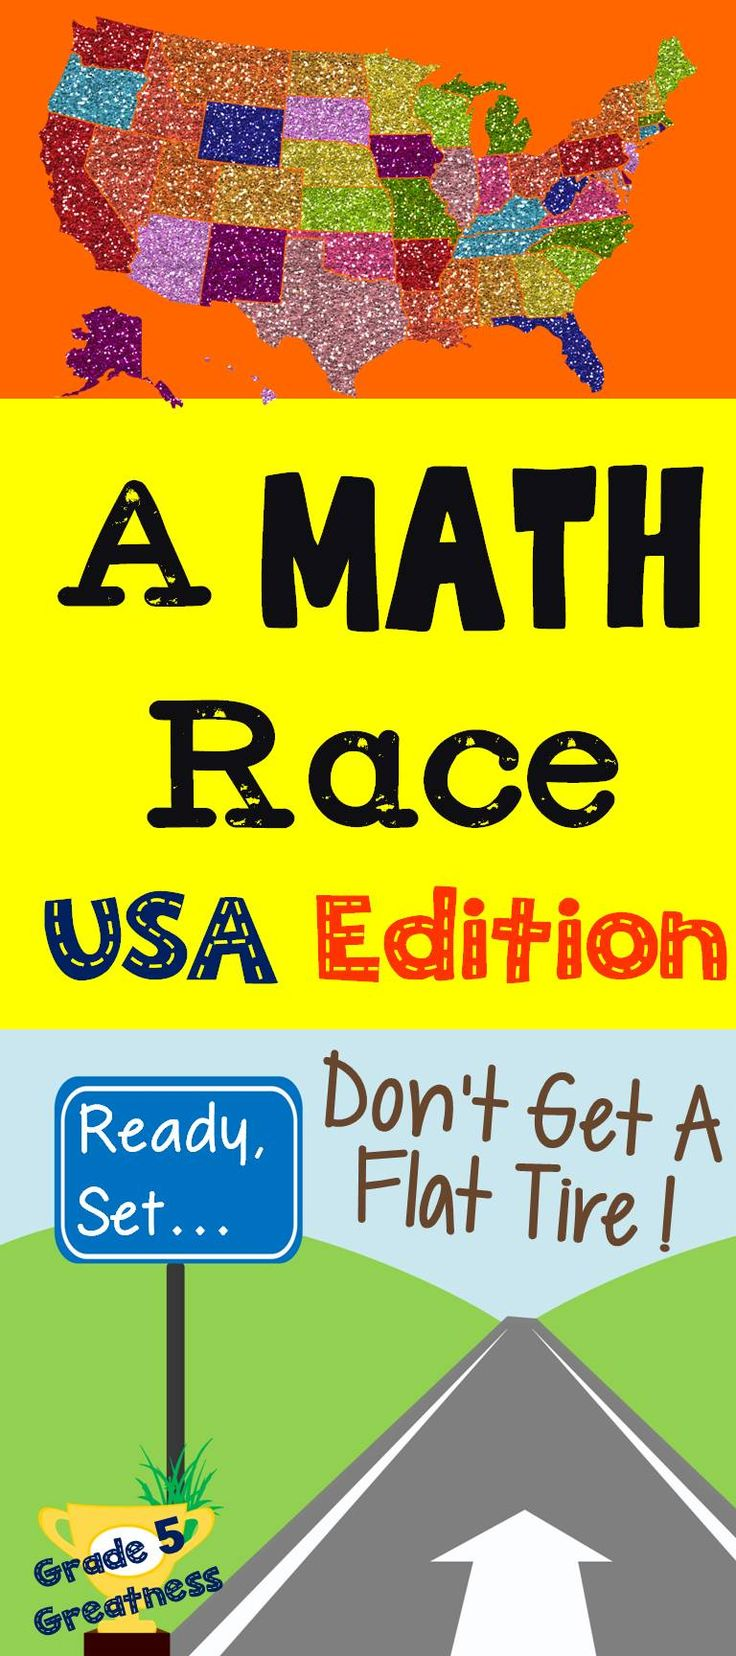 A math race that has students racing across the United States!  Perfect for end of year as it practices decimals, fractions, whole number operations, polygons, measurements, and more!